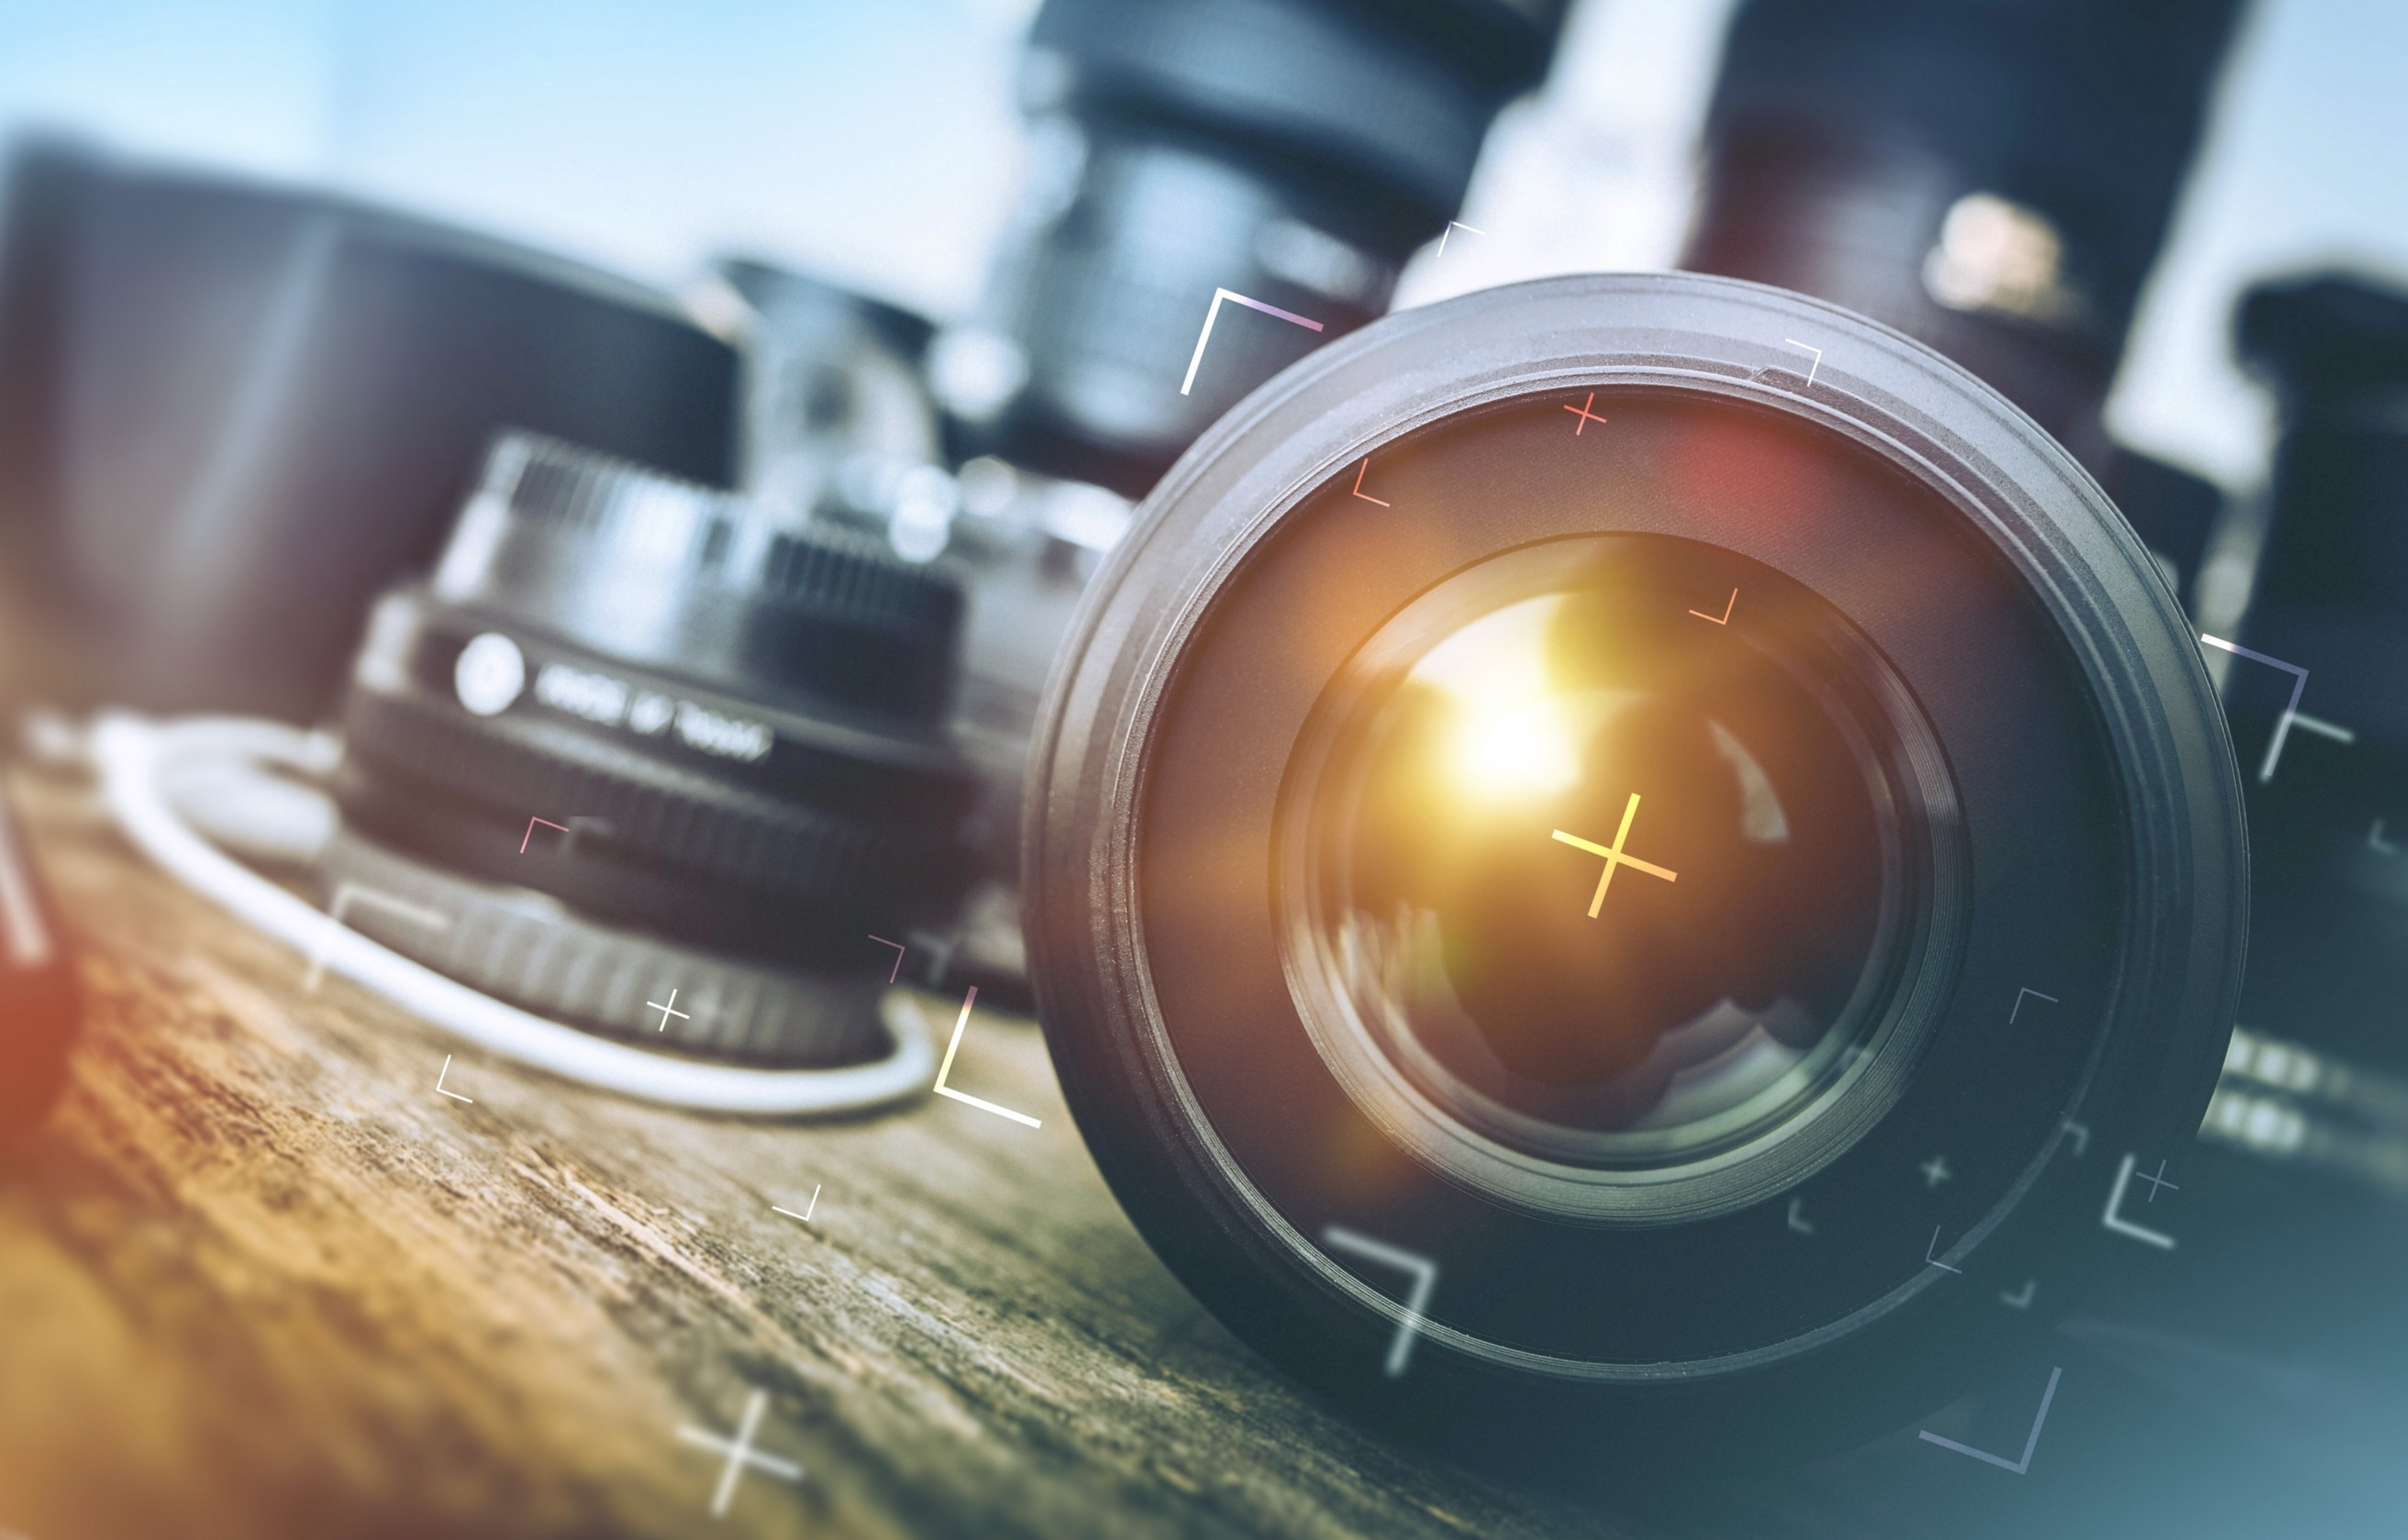 a934054b0367 Everything you need to know about camera lenses - Haje Jan Kamps - Medium